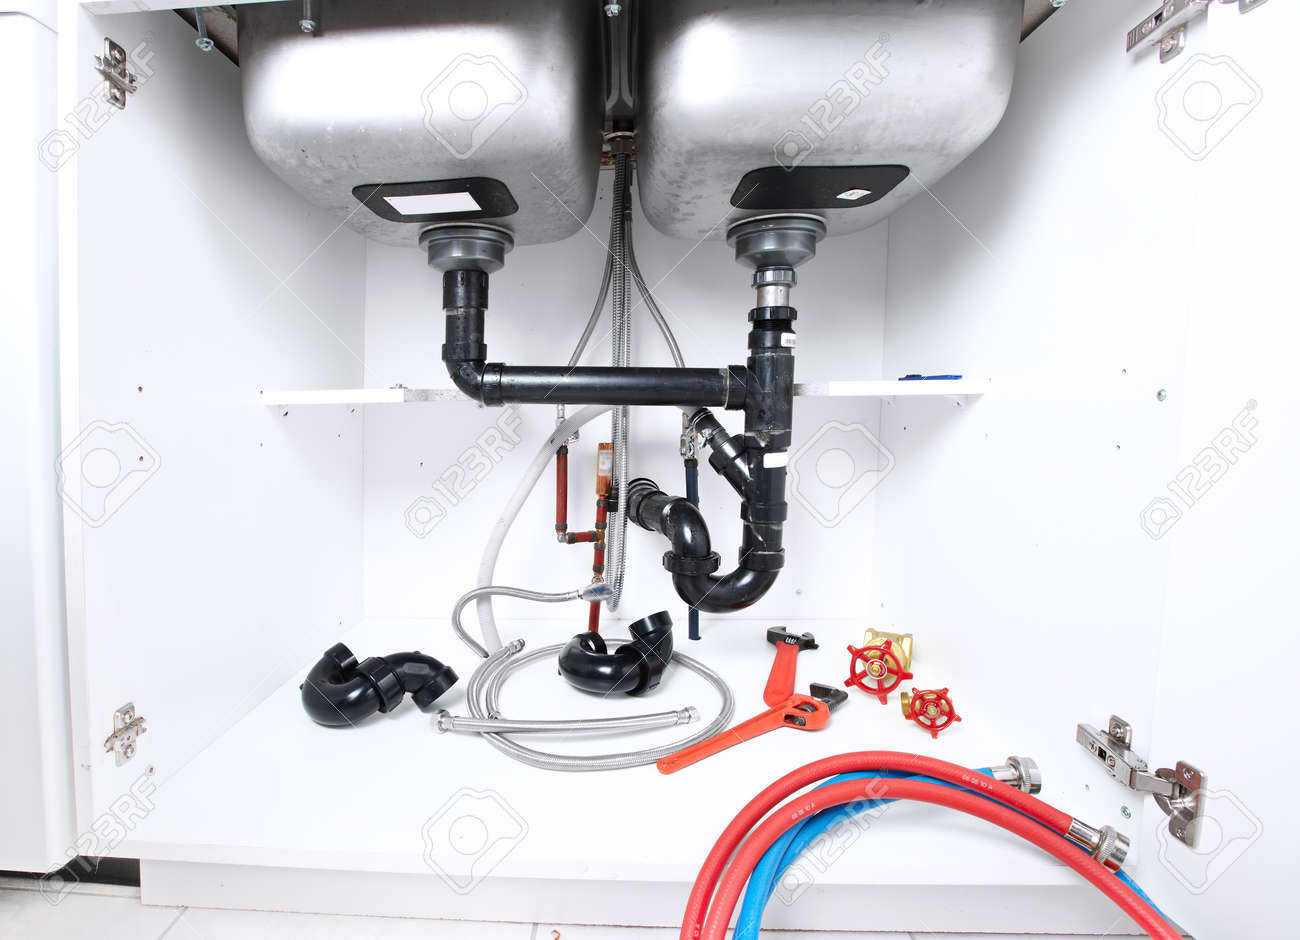 22871232 Kitchen sink pipes and drain Plumbing service  Stock Photo kitchen